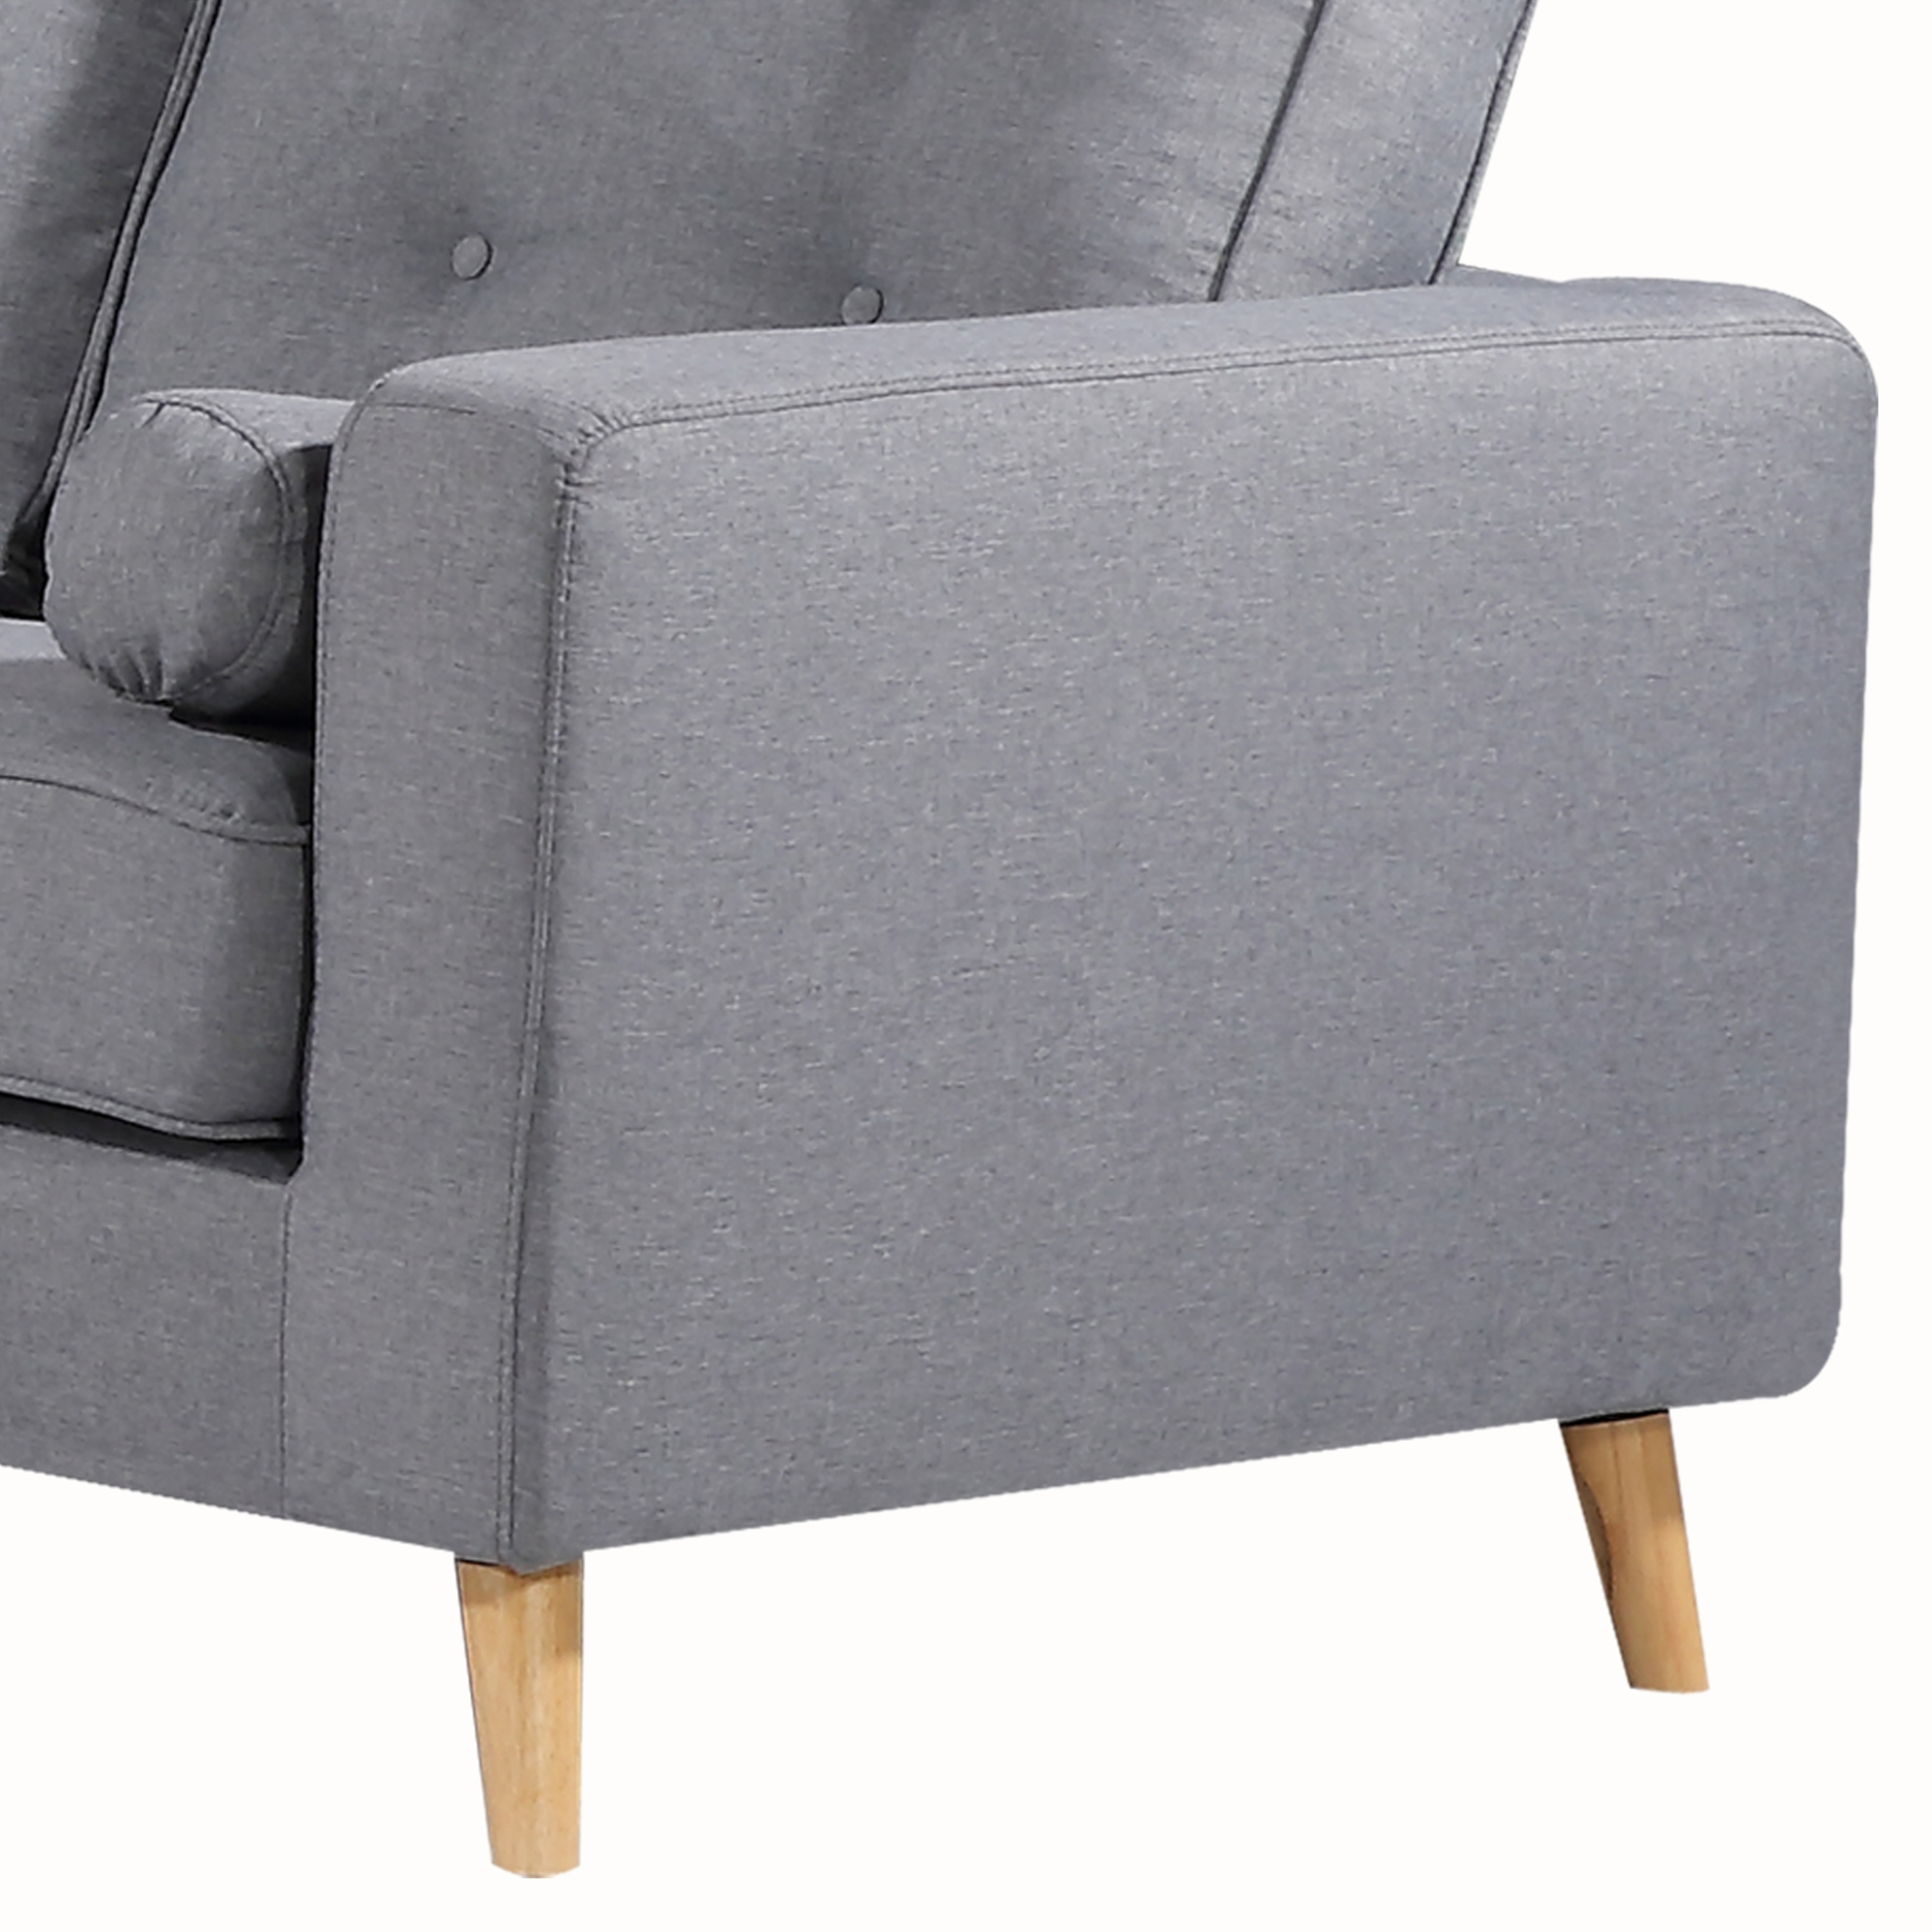 Tremendous Ethan Mid Century Upholstered Tufted Grey Loveseat Machost Co Dining Chair Design Ideas Machostcouk